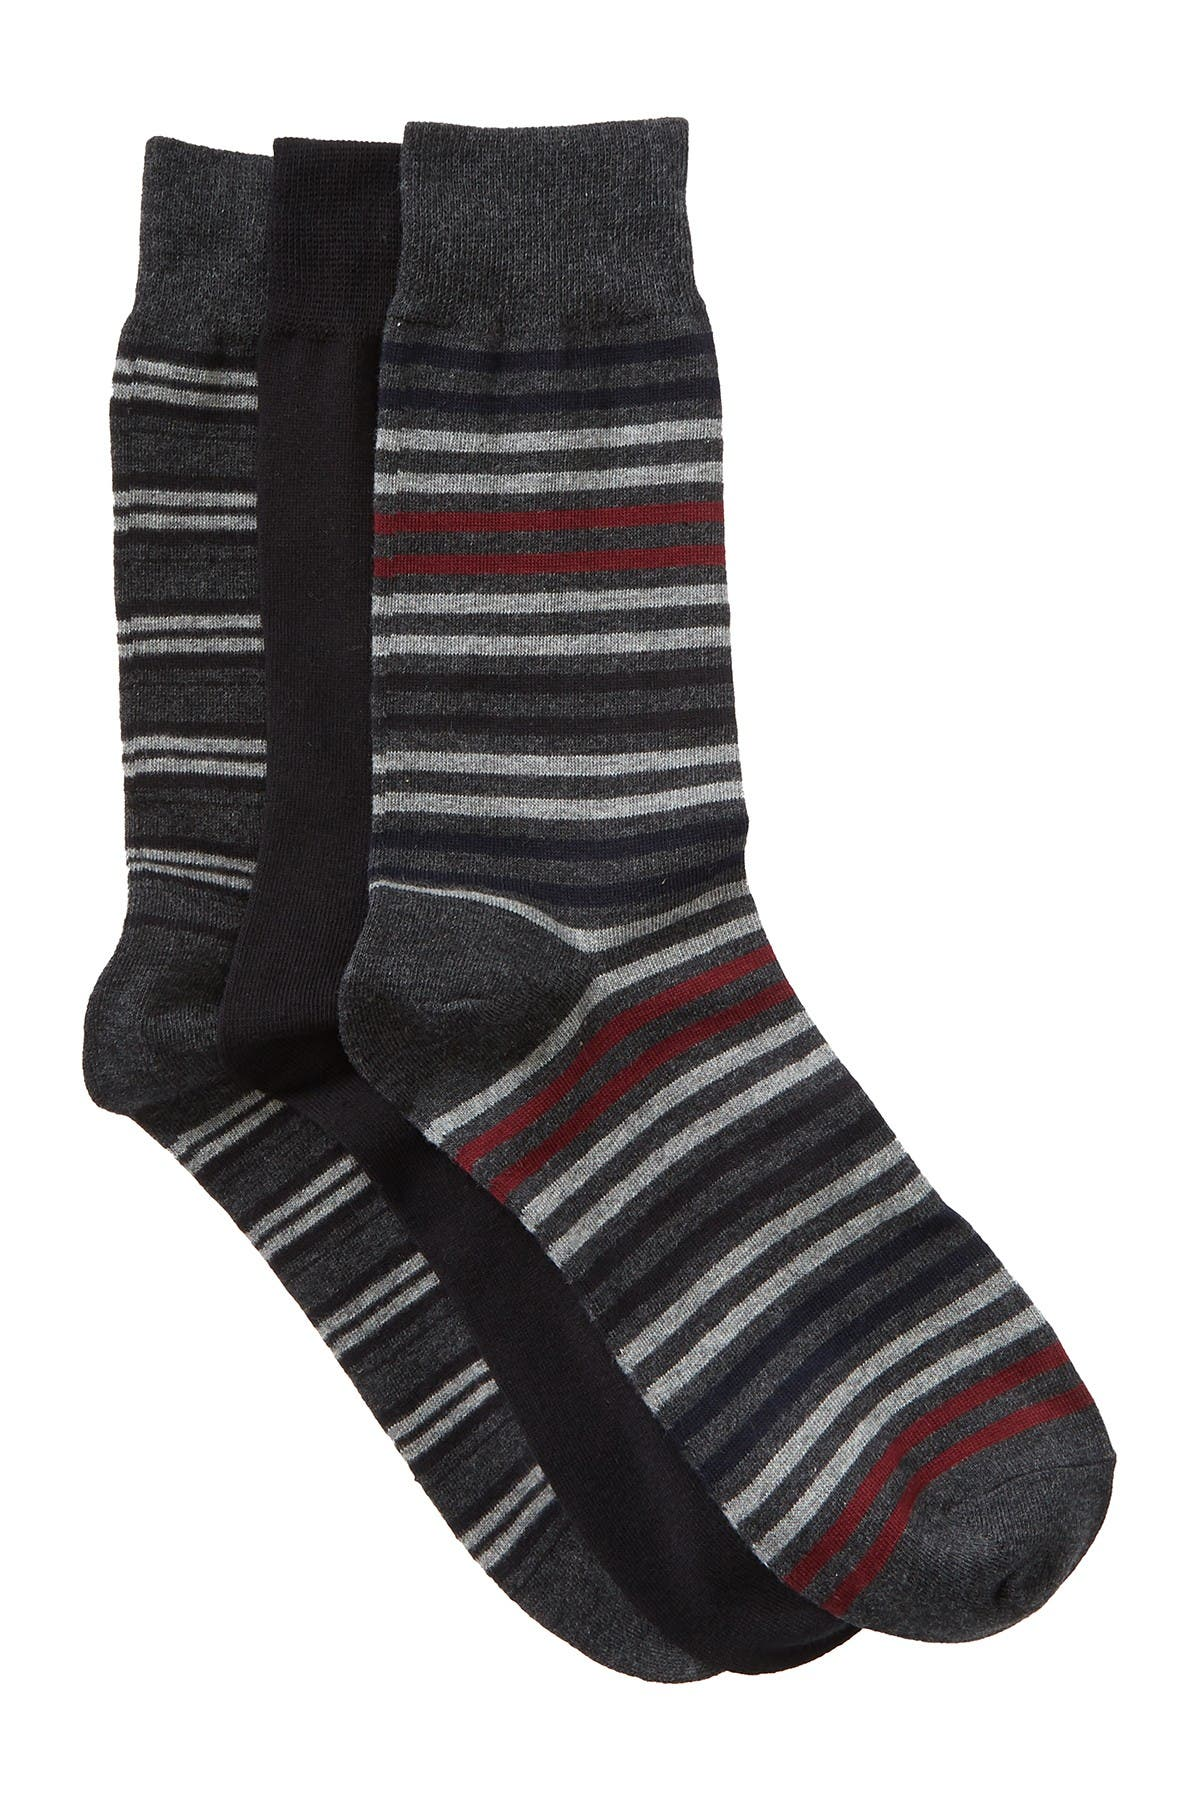 Image of Slate & Stone Striped Crew Socks - Pack of 3